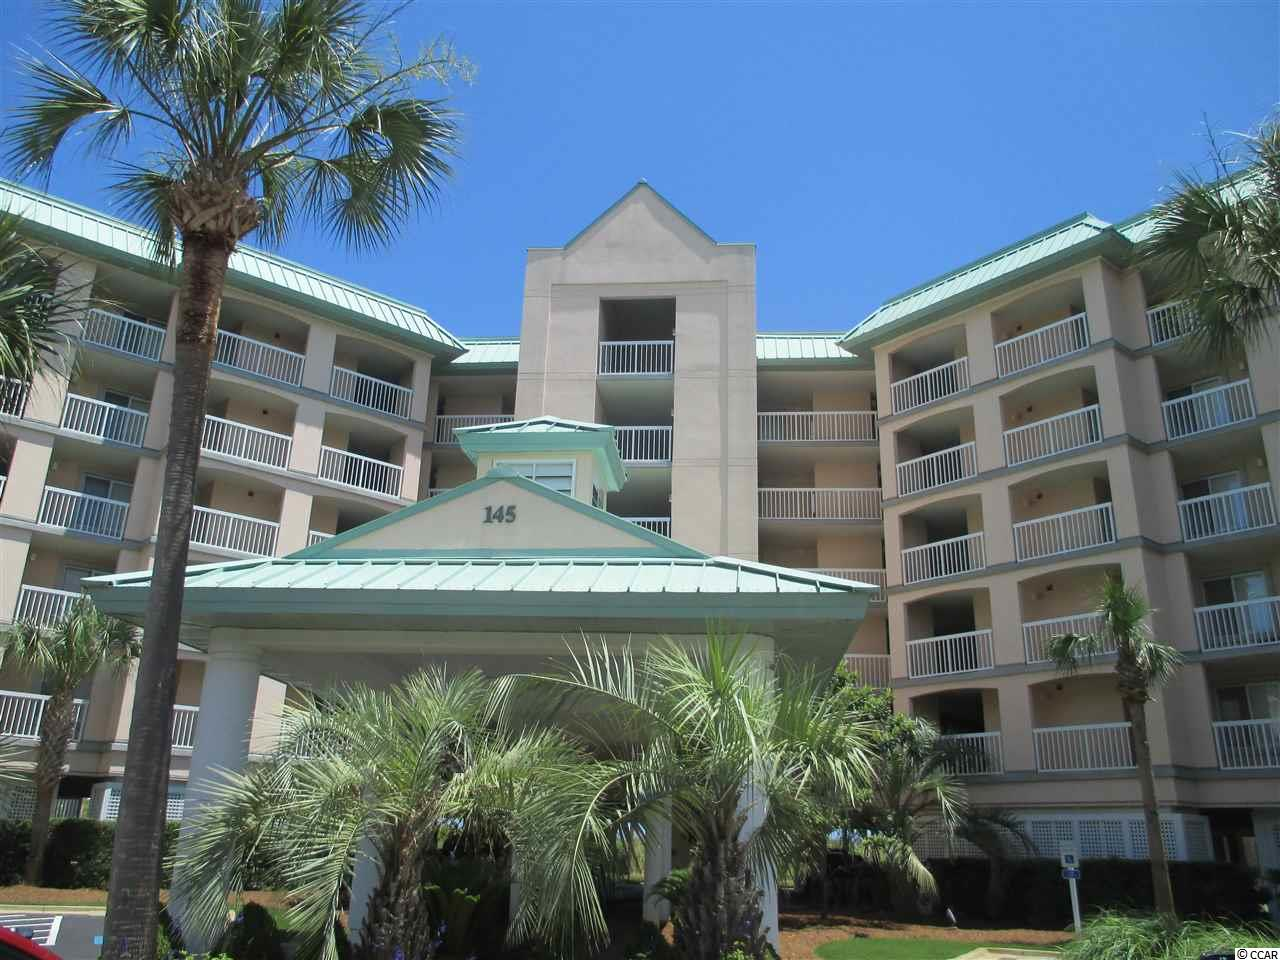 Wow! Want a knock dead gorgeous ocean front condo! Well this is it...109 Warwick with a complete remodel of living area, master bedroom and bath and kitchen. The condo now has the sophisticated decor rarely found in a beach villa. A few of the new features include: new pleasing paint colors, beautiful natural wood laminate floors, stainless appliances, new hardware thru out, elegant but comfortable furnishings, big screen TV, handsome new master bath, and a lovely ocean front porch furnishings that will functional as your favorite room in the villa.  This beautiful 3 bedroom, 3 bath condo is located ocean front at the wonderful resort of Litchfield by the Sea. The first floor location and private stairs from balcony with  reserved parking just below allows the condo to live like a secluded home...right in the heart of all the terrific amenities of Litchfield by the Sea. Come enjoy the beach, ocean and balmy breezes with tennis, pools, walking and bike trails, crabbing and fishing docks, beach club, and more right at your door step. Great rental history; new HVAC; beautifully remodeled and immaculately maintained.